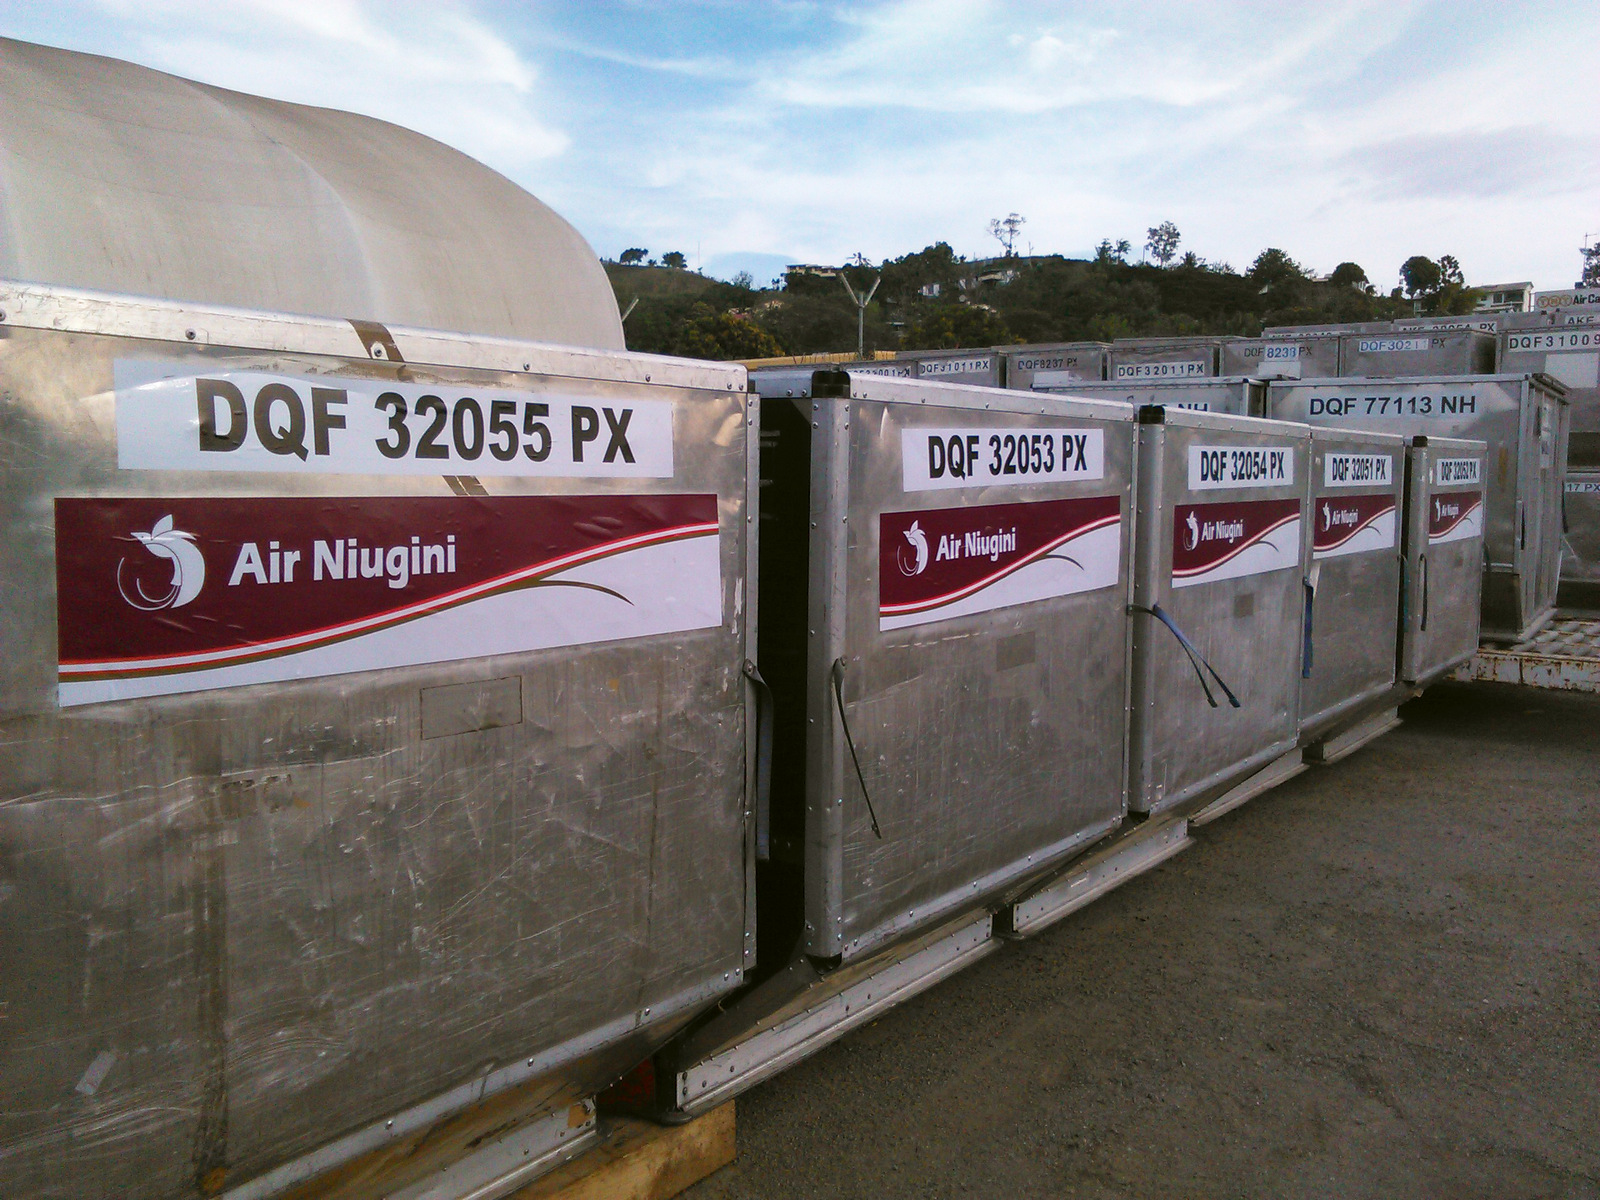 Additional ULD Containers To Ease PX Cargo Unit Loading Problems